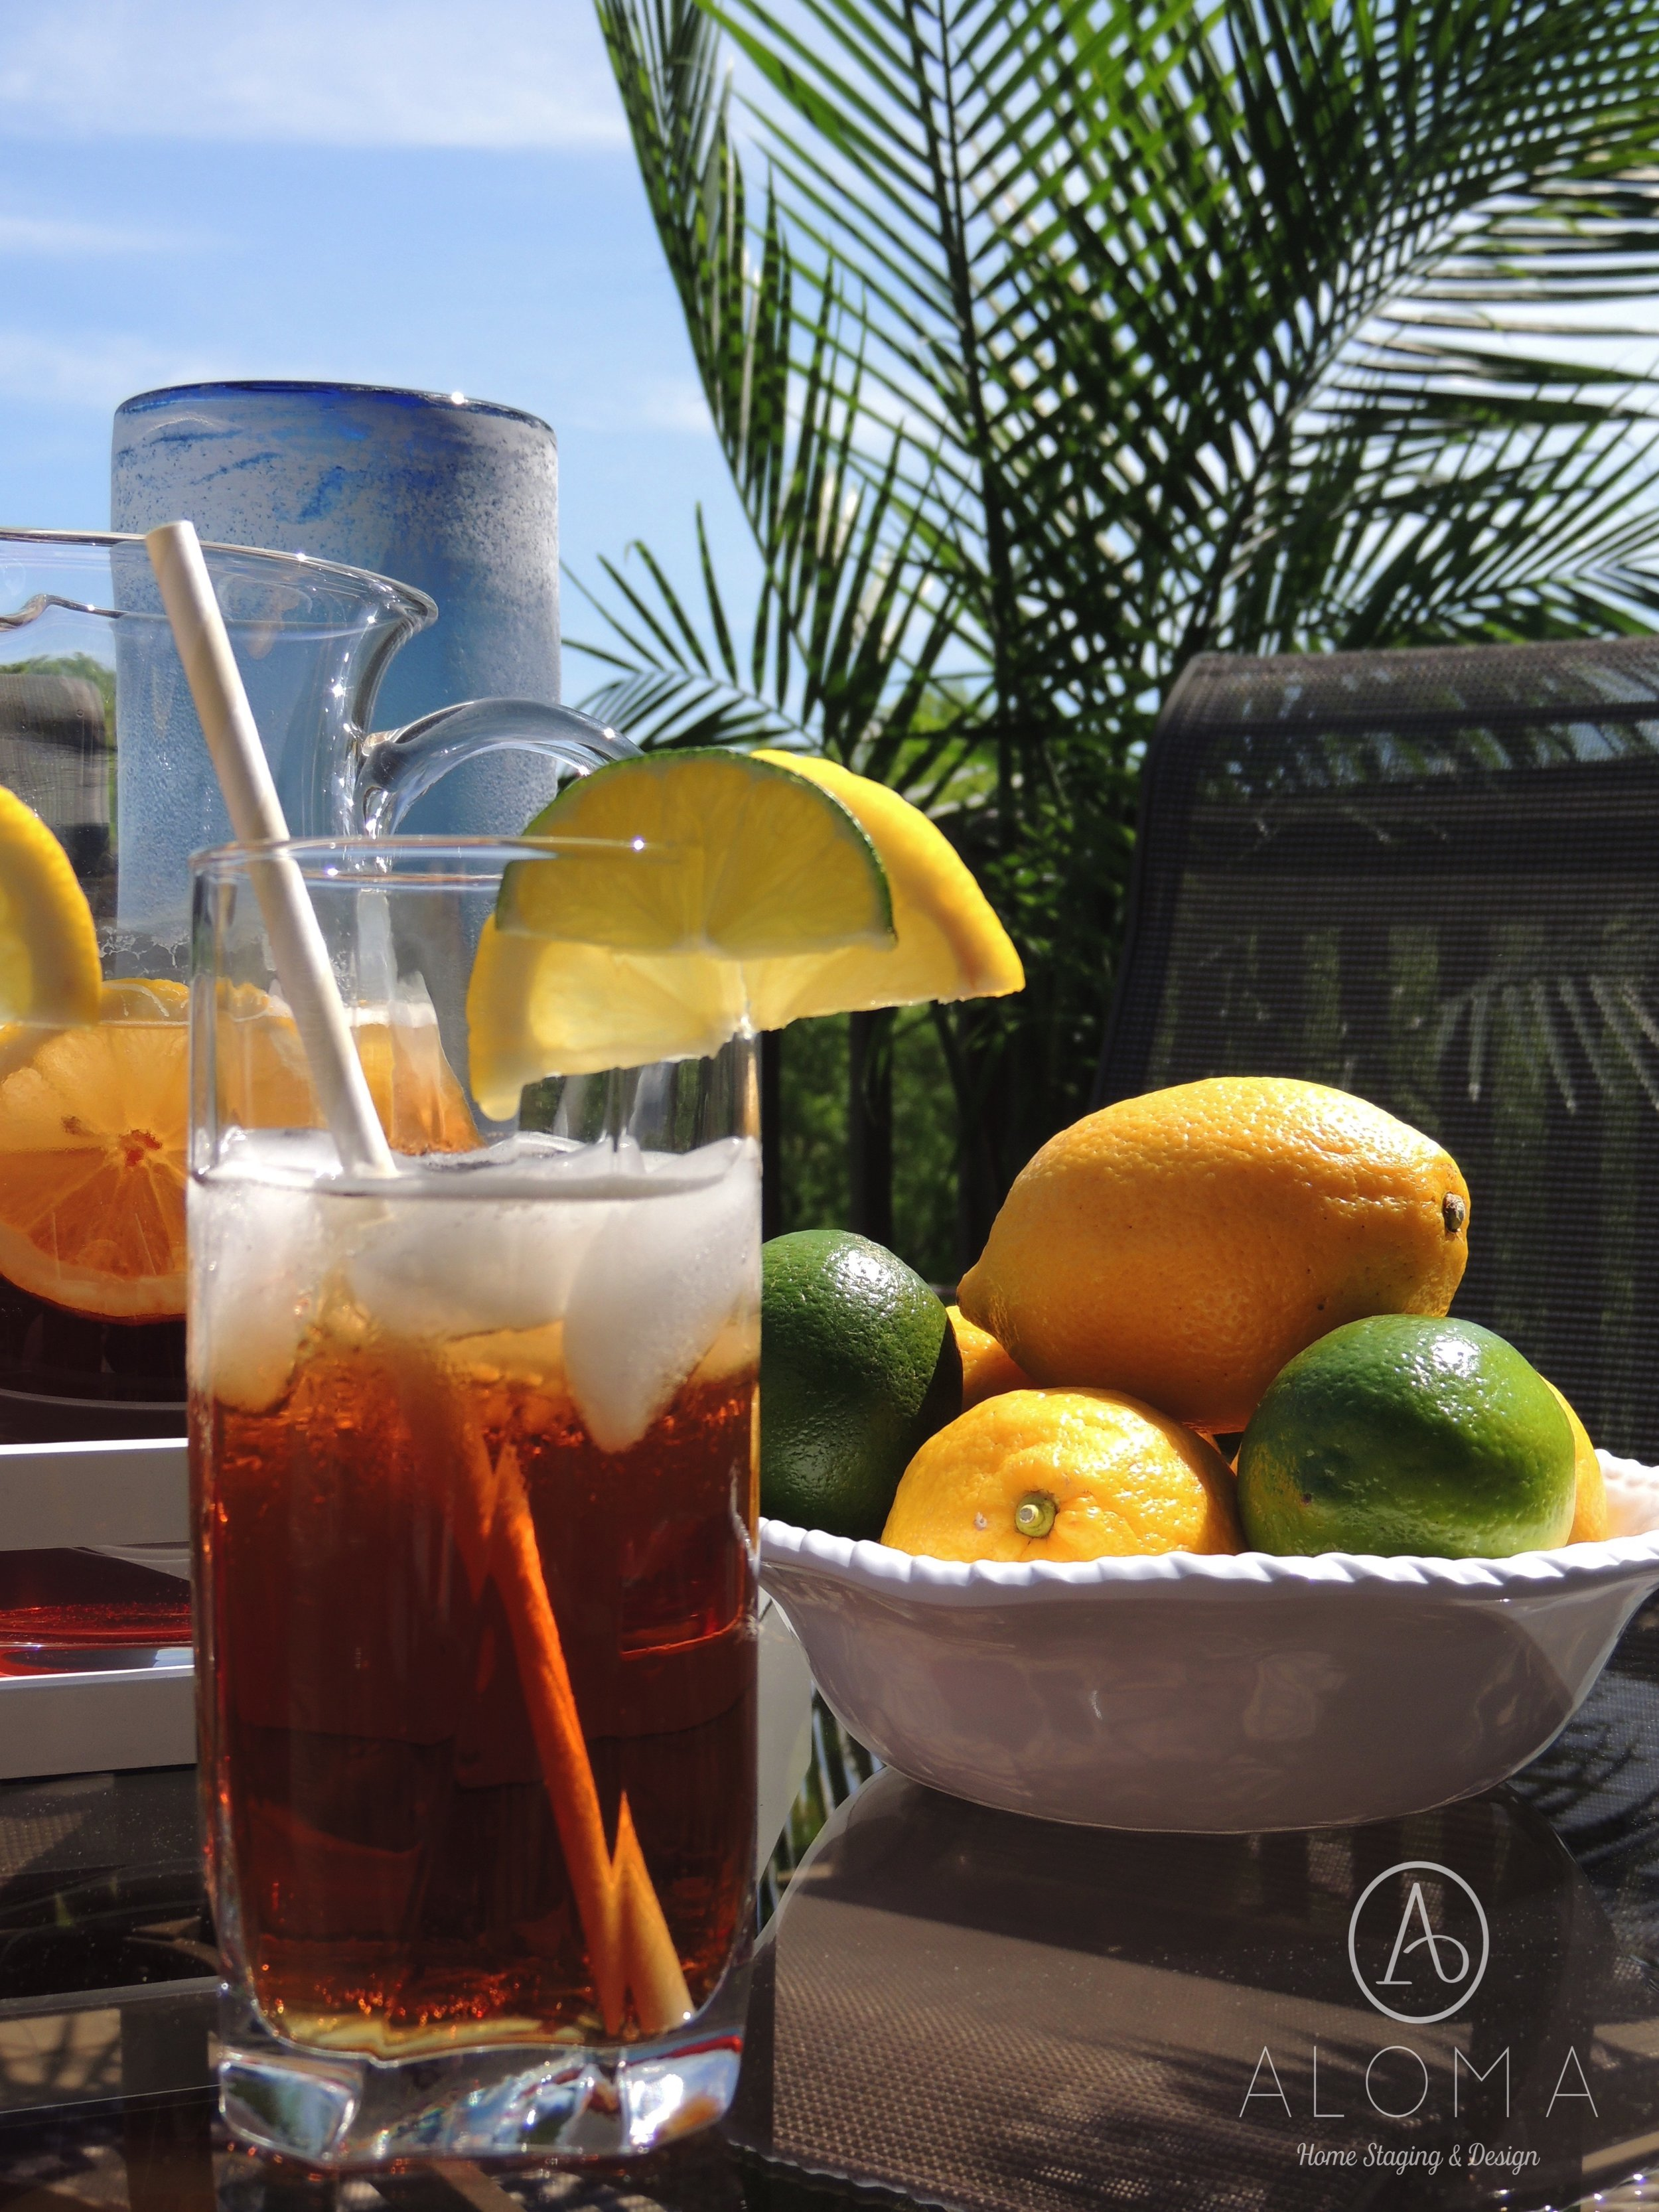 Iced tea with lemons & limes by ALOMA Home Staging & Design